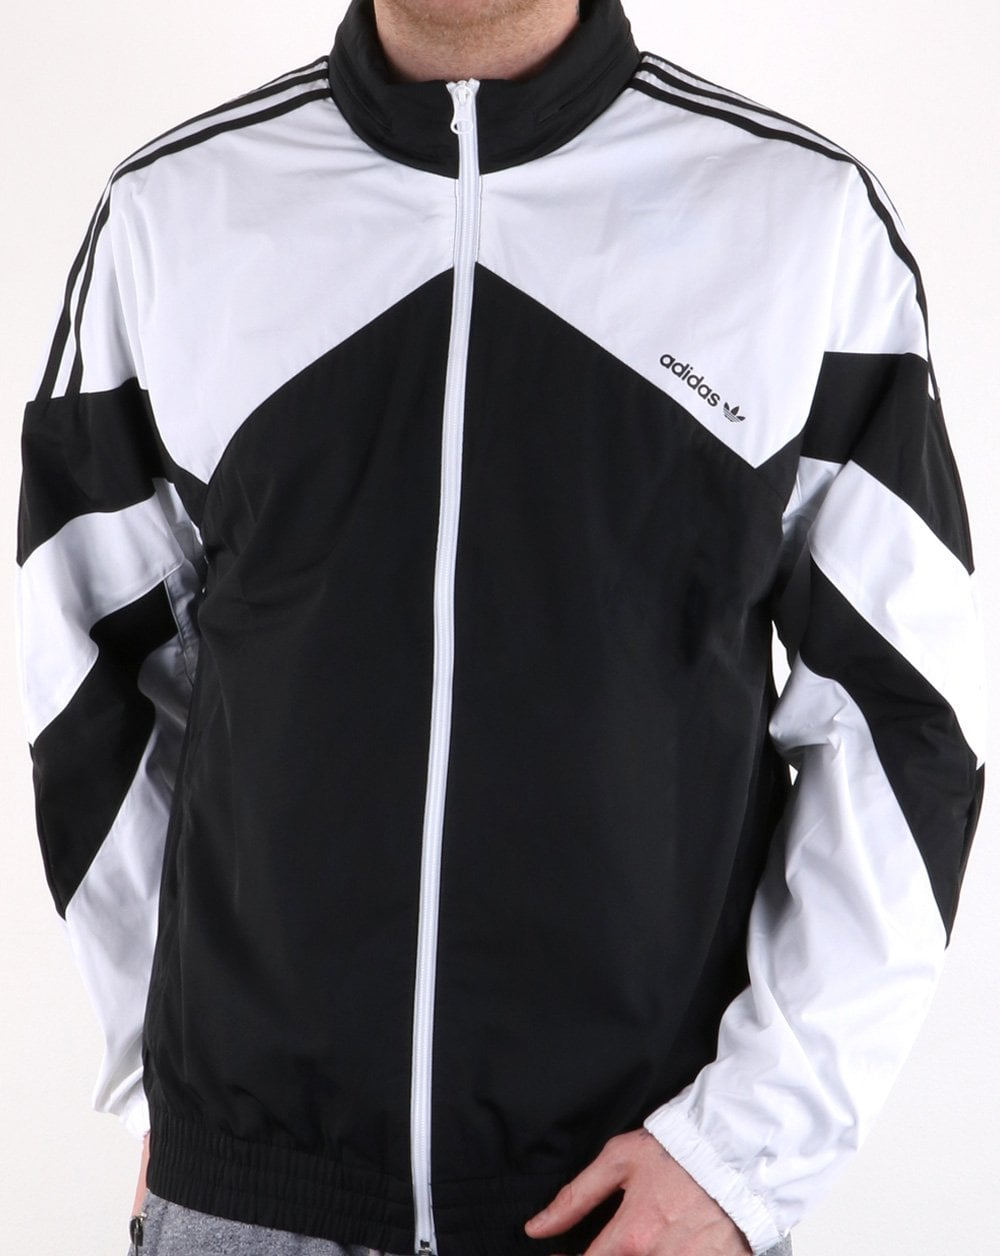 fb0a1453b Adidas Originals Palmeston Windbreaker Black/white, Mens,Retro,Classic